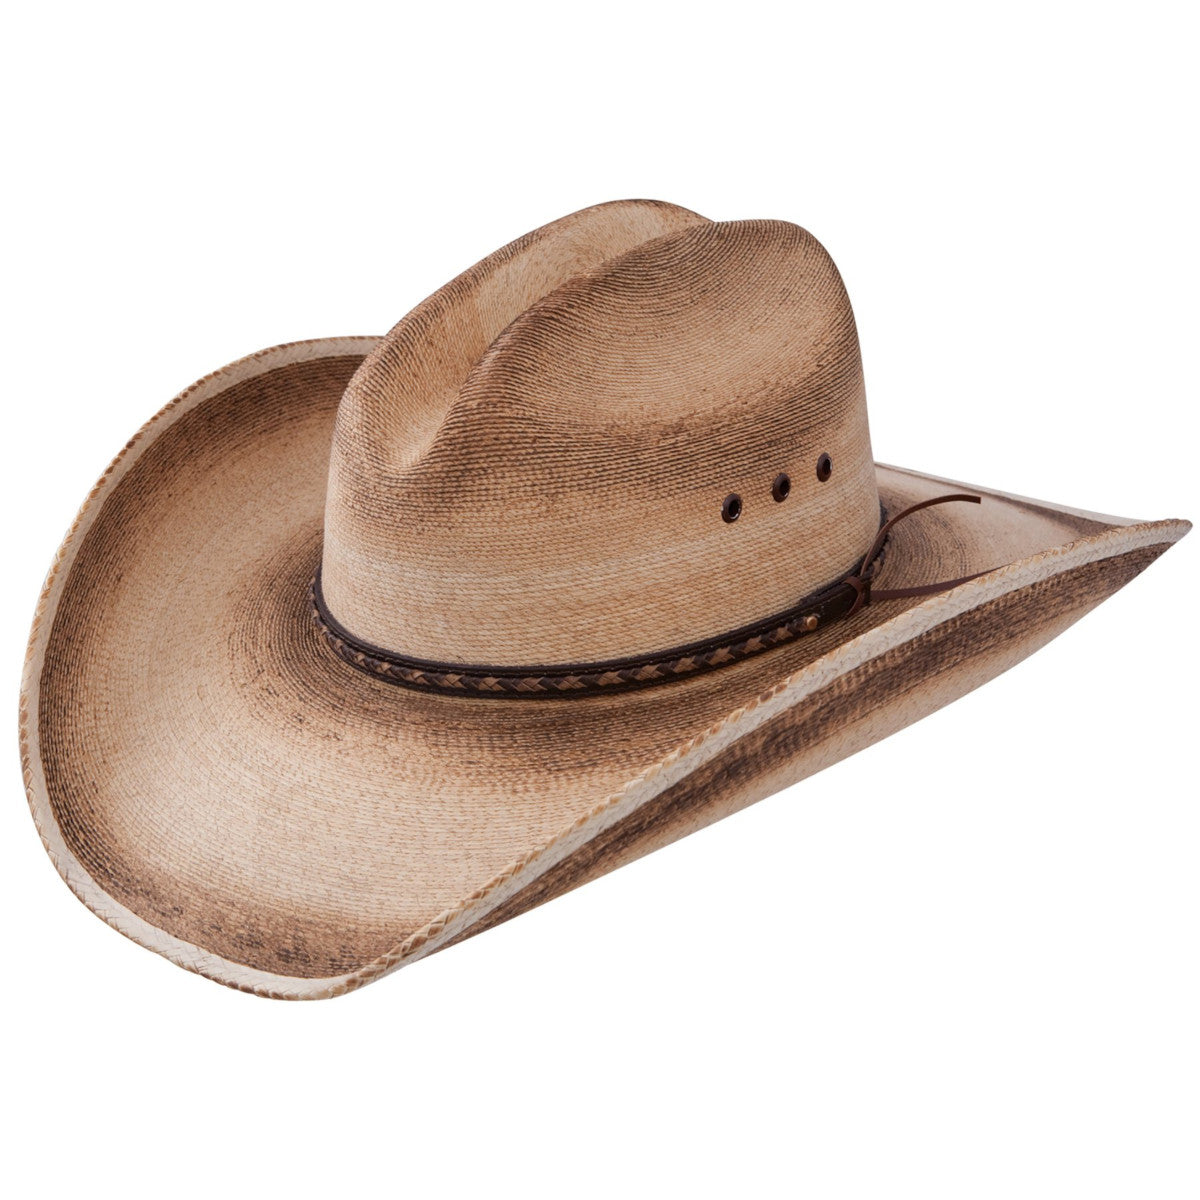 Resistol Men's Jason Aldean Georgia Boy Palm Leaf Straw Cowboy Hat